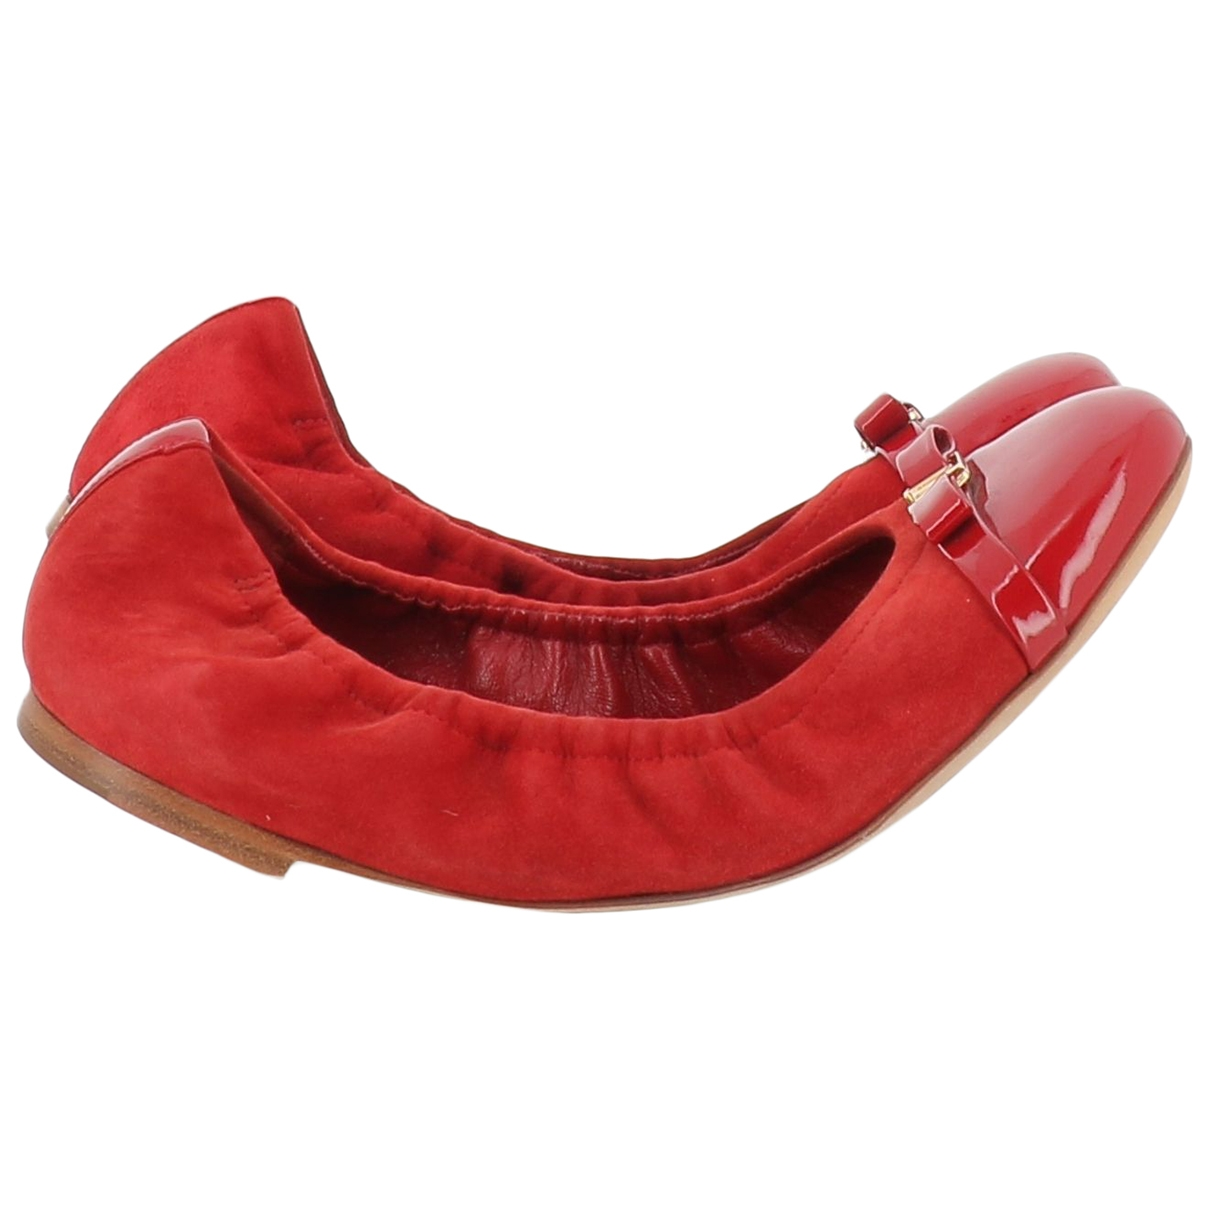 Louis Vuitton \N Red Suede Ballet flats for Women 37 EU